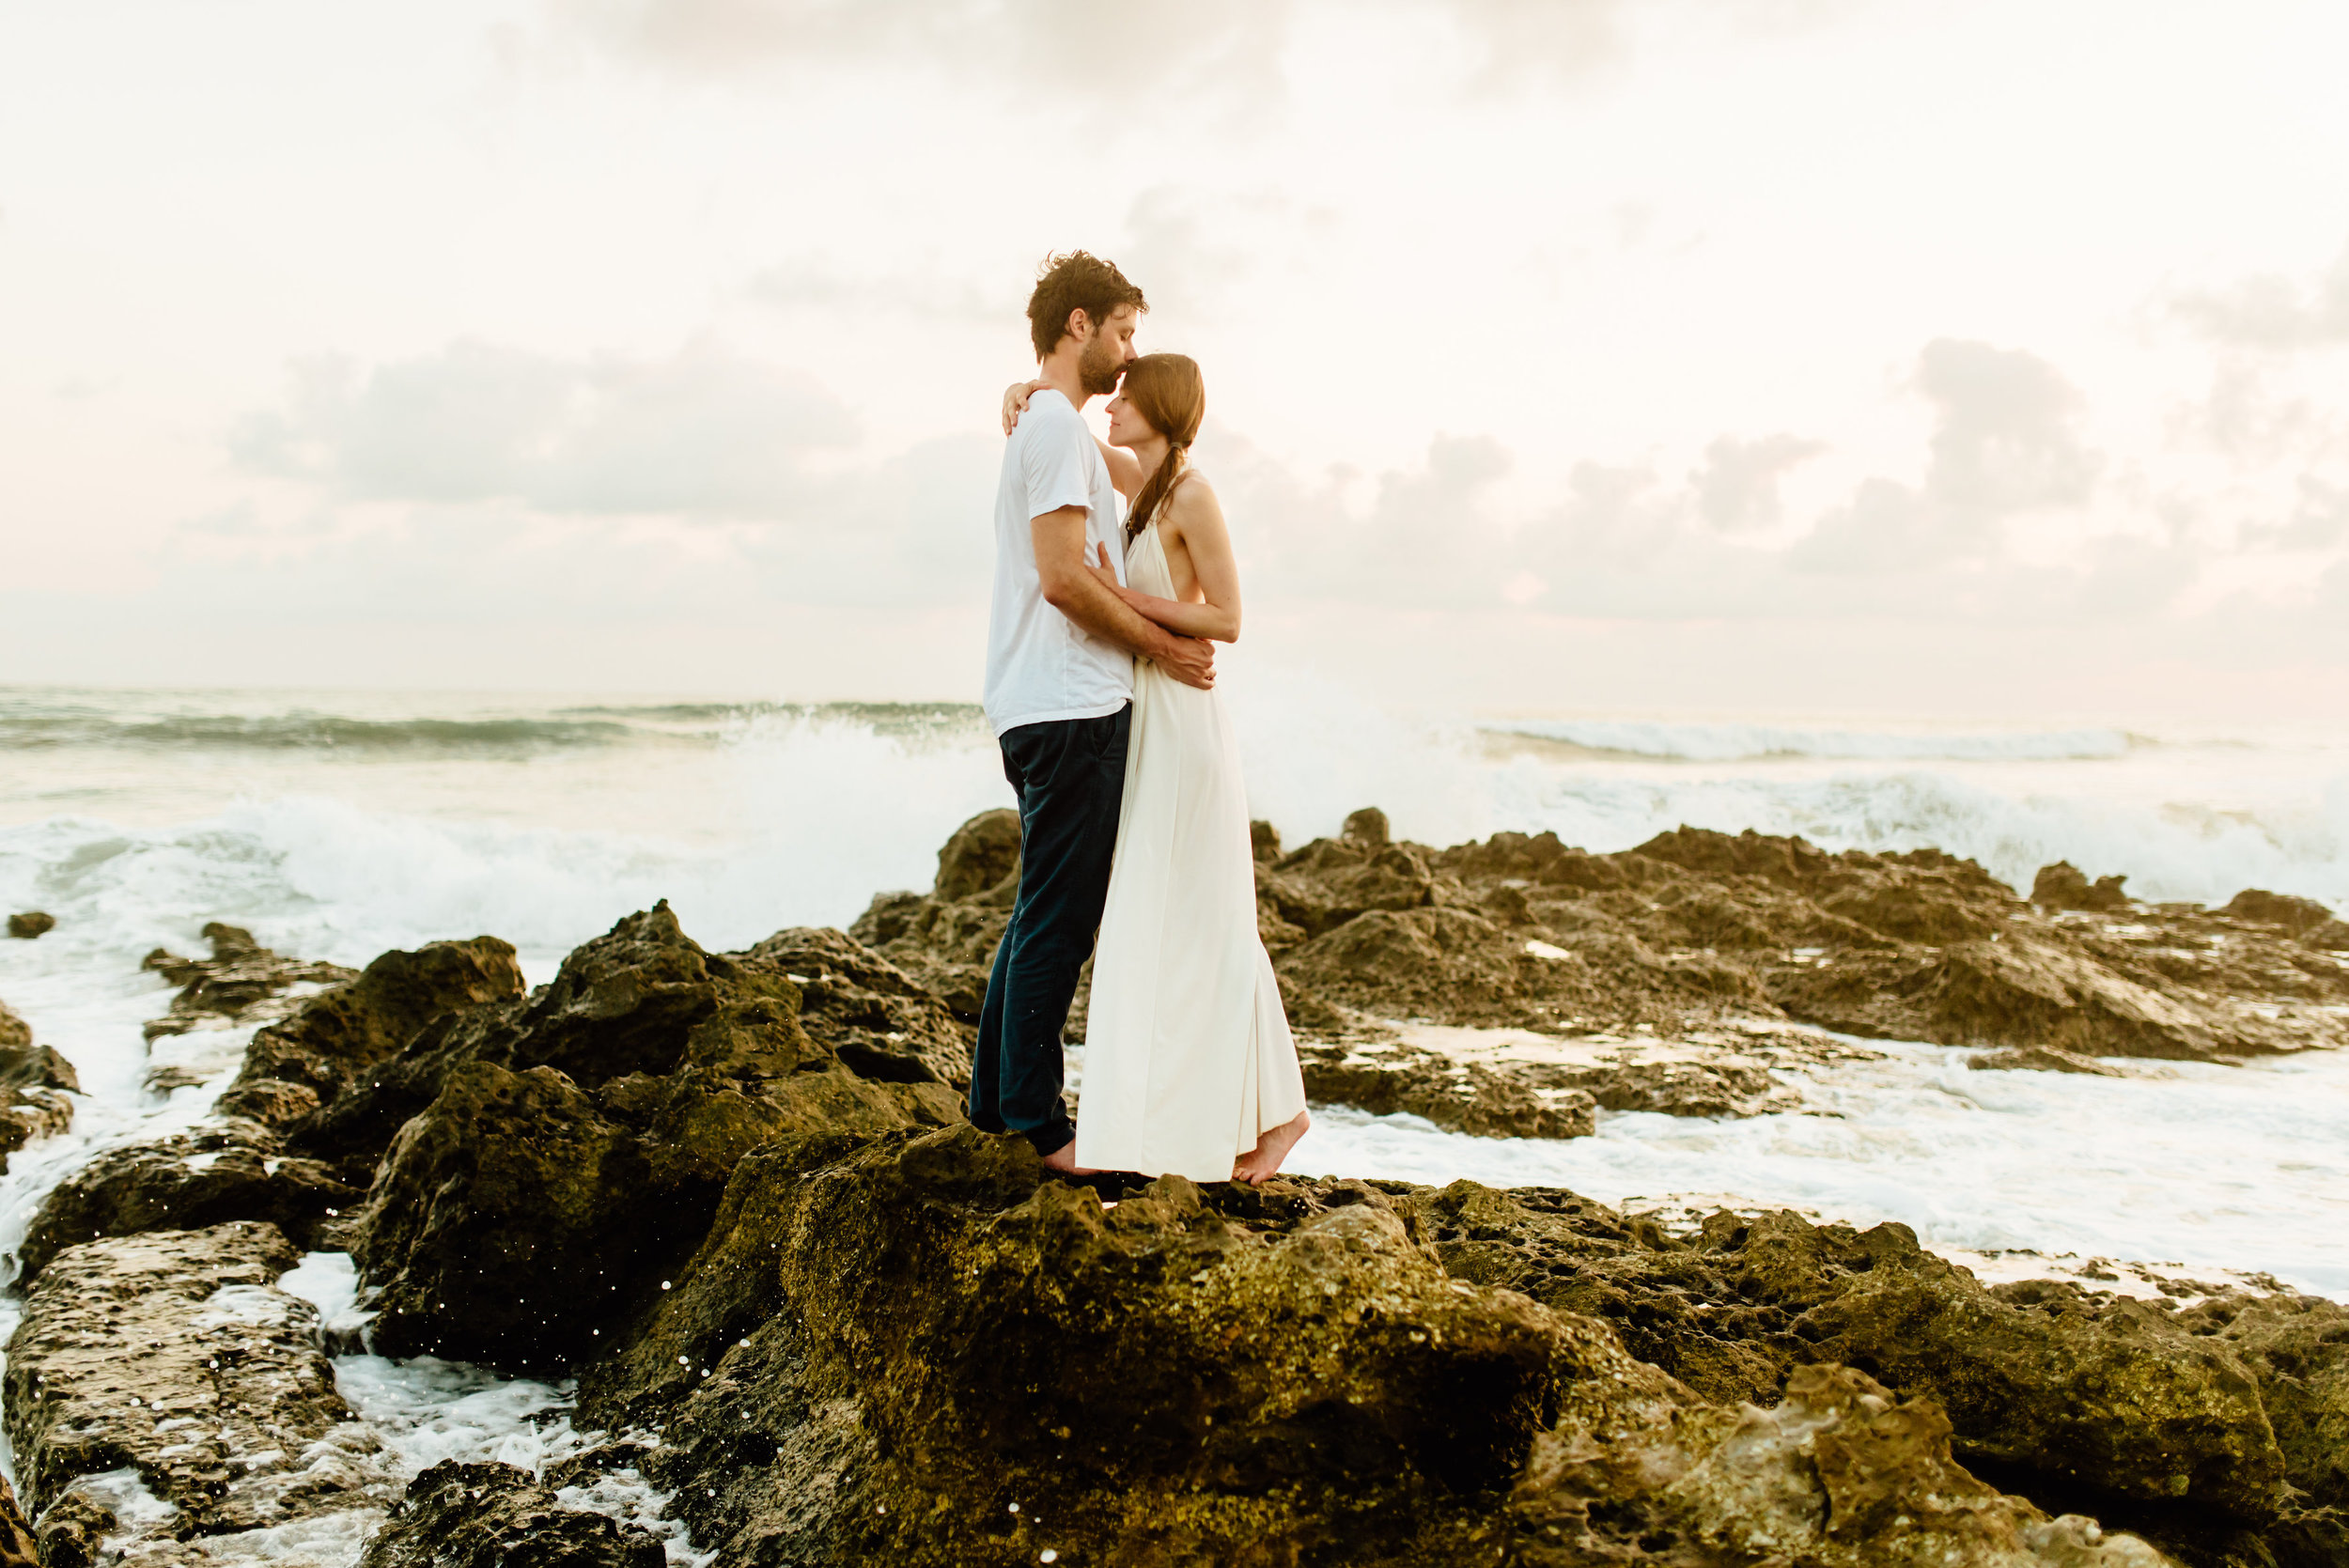 Absolutely swooning over this magical elopement on the rocky beaches in Costa Rica. I absolutely love the rugged Nicoya Peninsula for an intimate wedding or elopement!  Destination wedding photography by intimate Costa Rica wedding photographer, Maddie Mae.